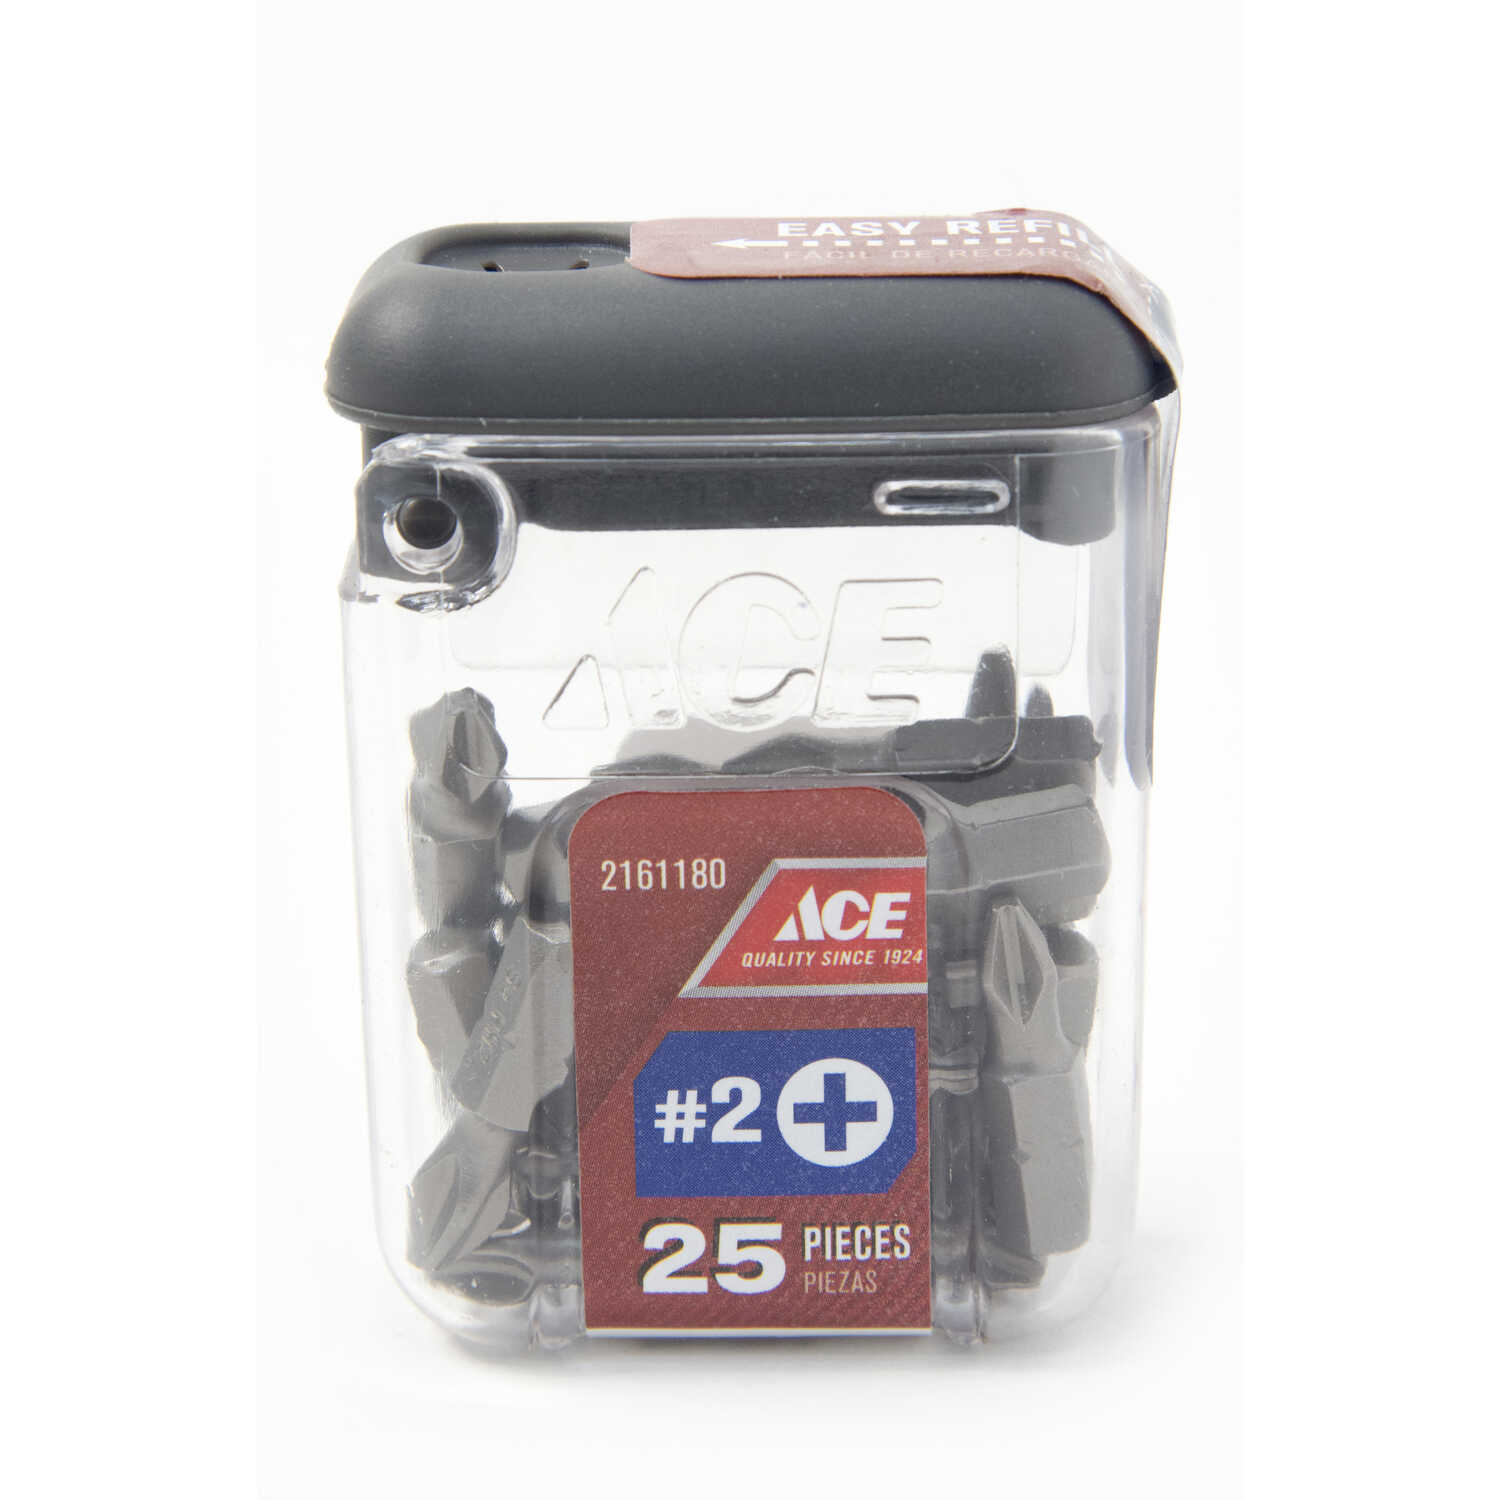 Ace  Phillips  2   x 1 in. L Insert Bit  S2 Tool Steel  25 pc.